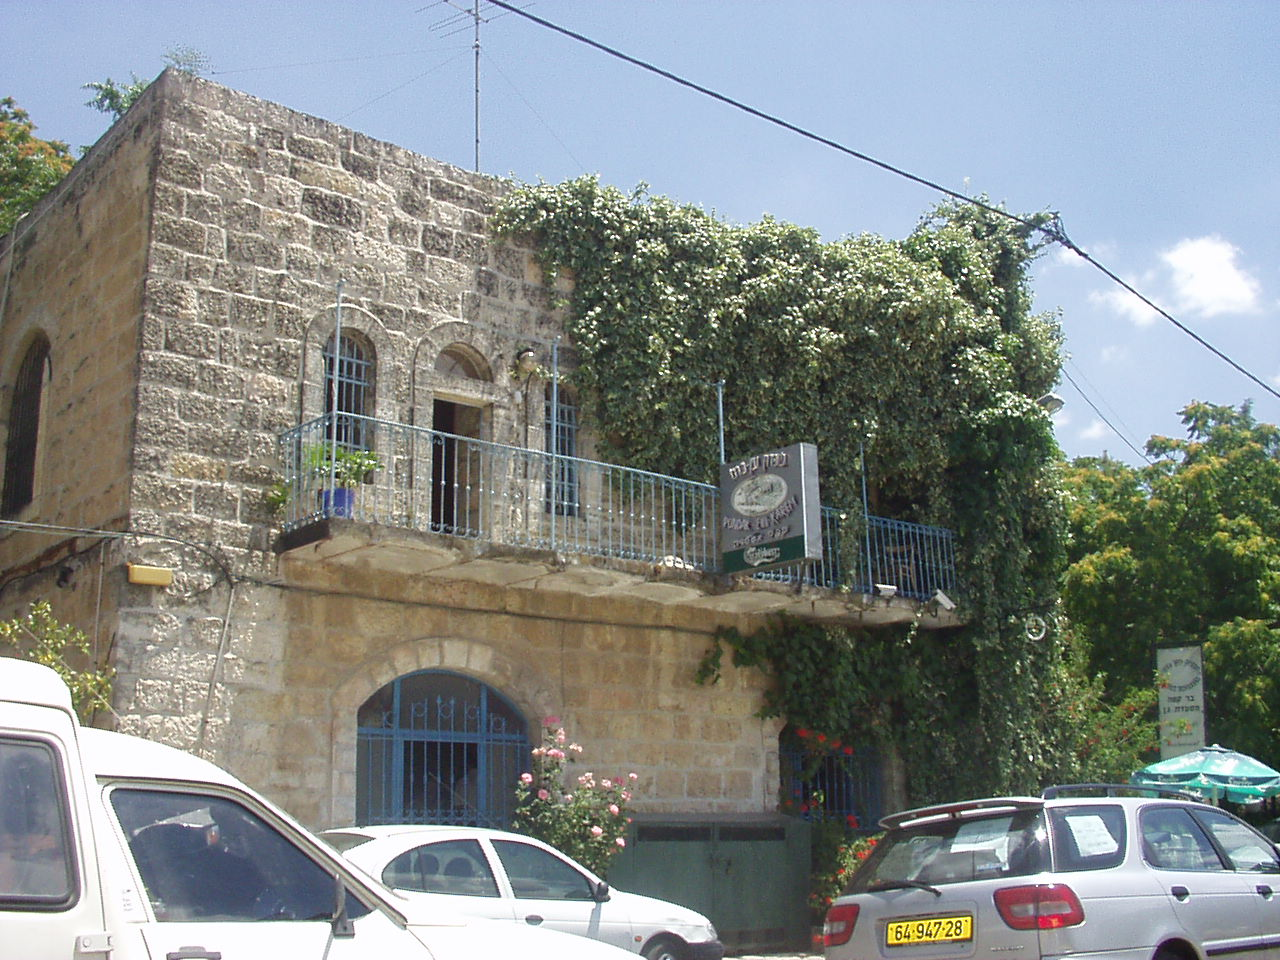 'Ayn Karim - عين كارم : A beautiful Palestinian architecture, little changed since Nakba, June 2002